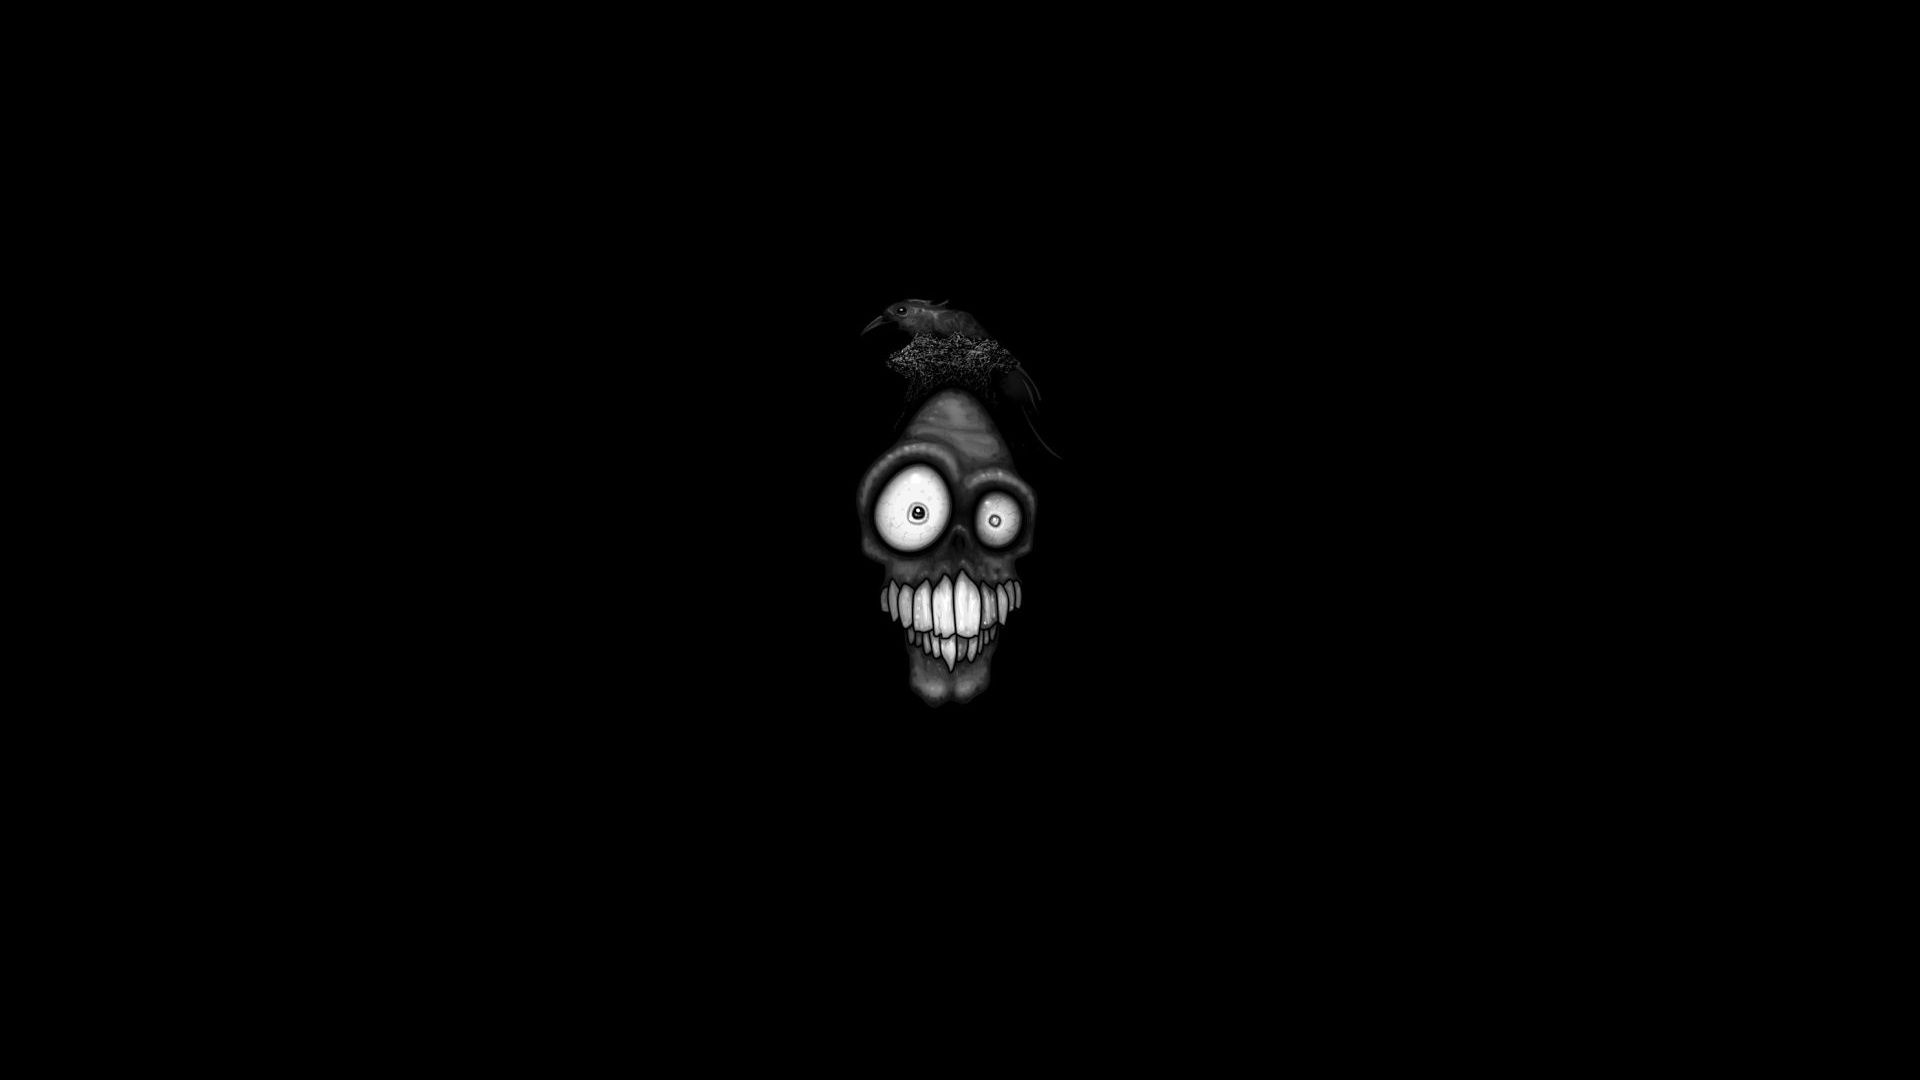 Funny Face Image 16841 Wallpaper Dark Desktop Backgrounds Cool Wallpapers Black And White Cool Backgrounds Wallpapers